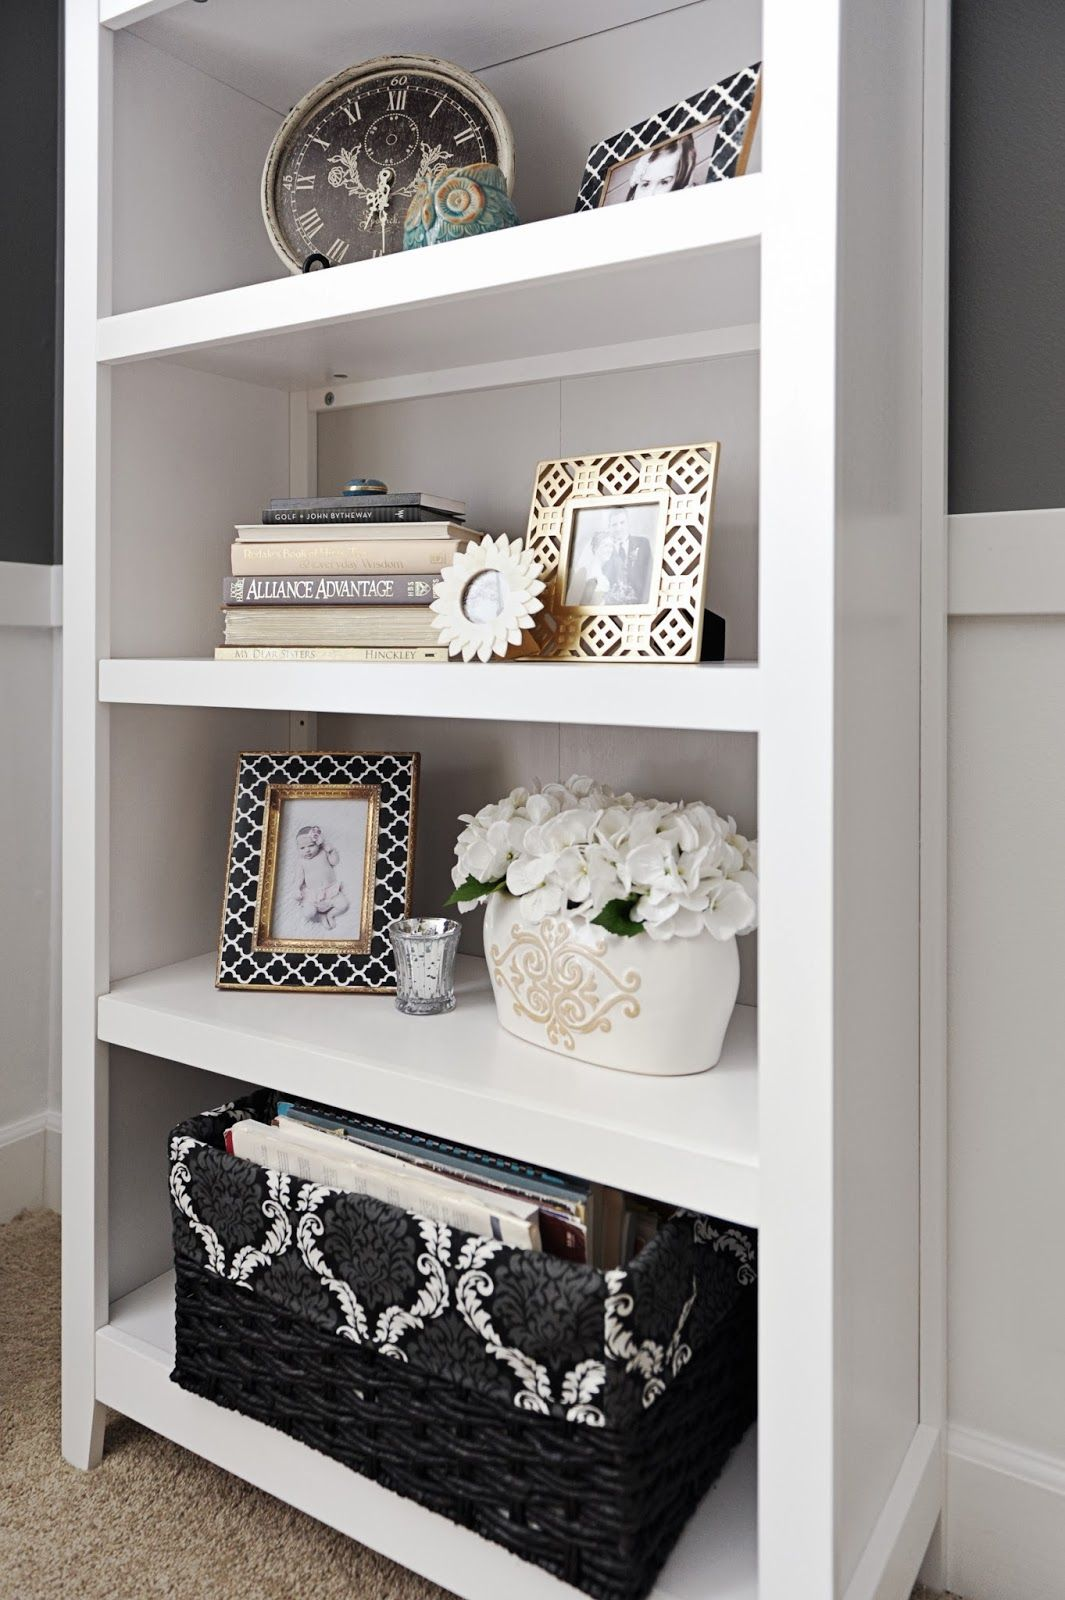 Studio 7 Interior Design How to Stage a Bookcase & Studio 7 Interior Design: How to Stage a Bookcase | House Ideas ...